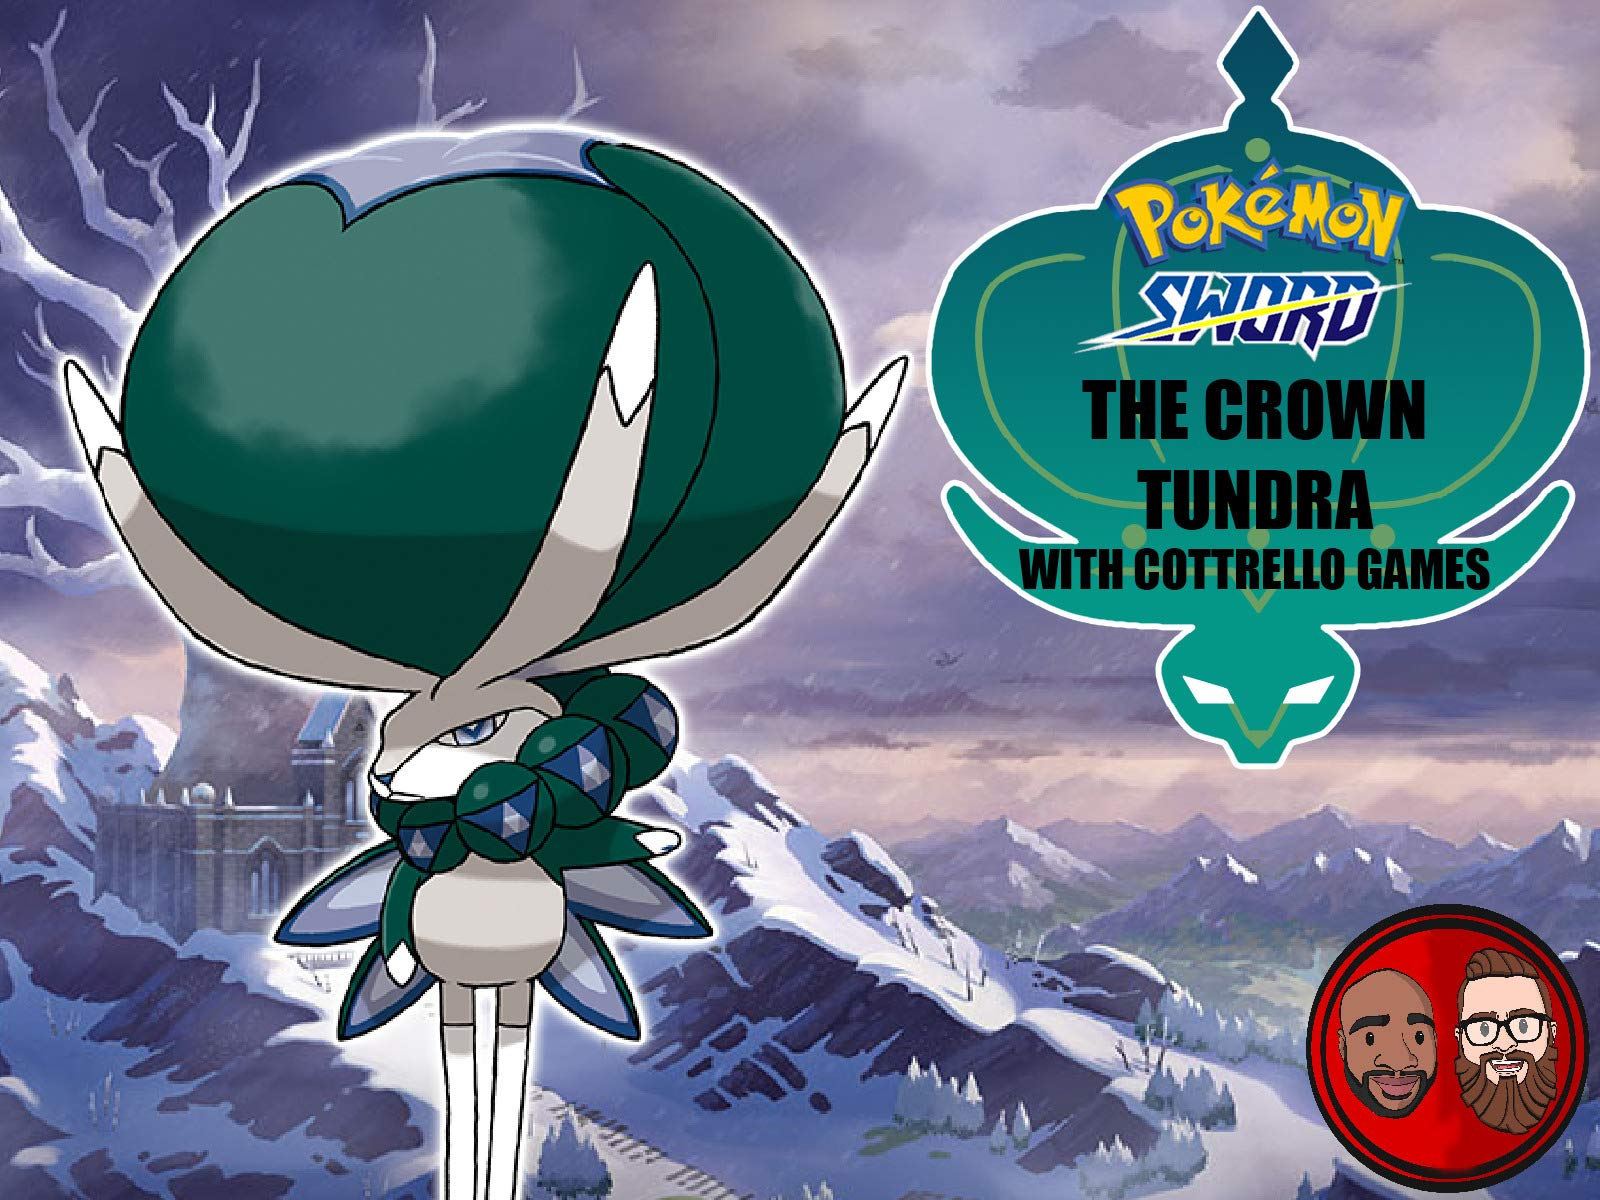 Clip: Pokemon The Crown Tundra with Cottrello Games - Season 1